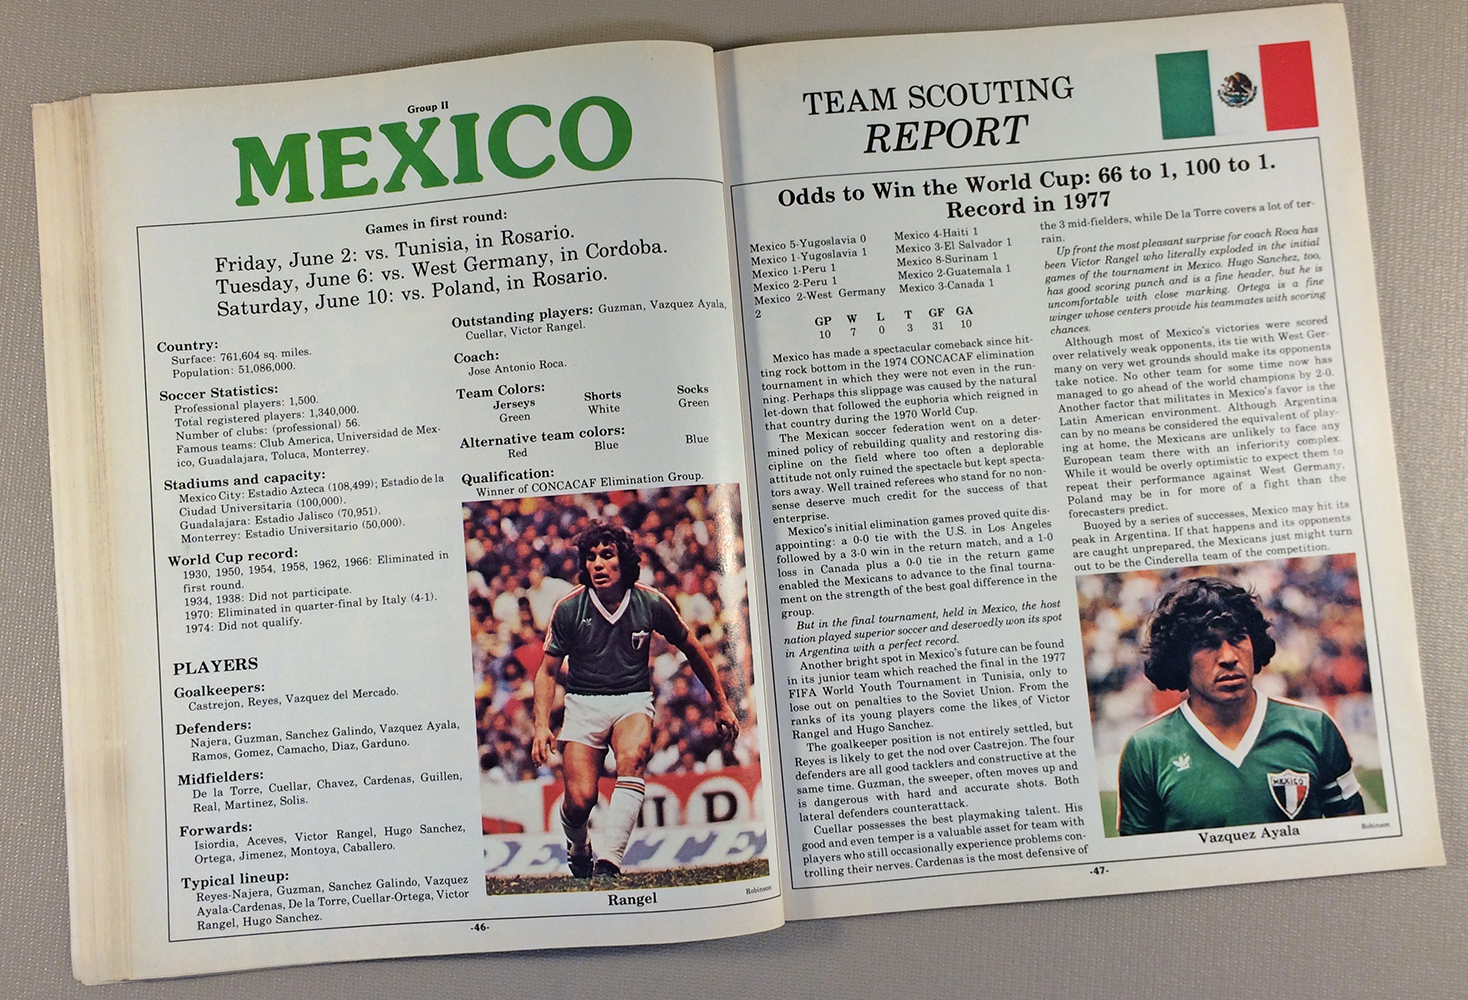 Victor Rangel, Mexico 1978 World Cup